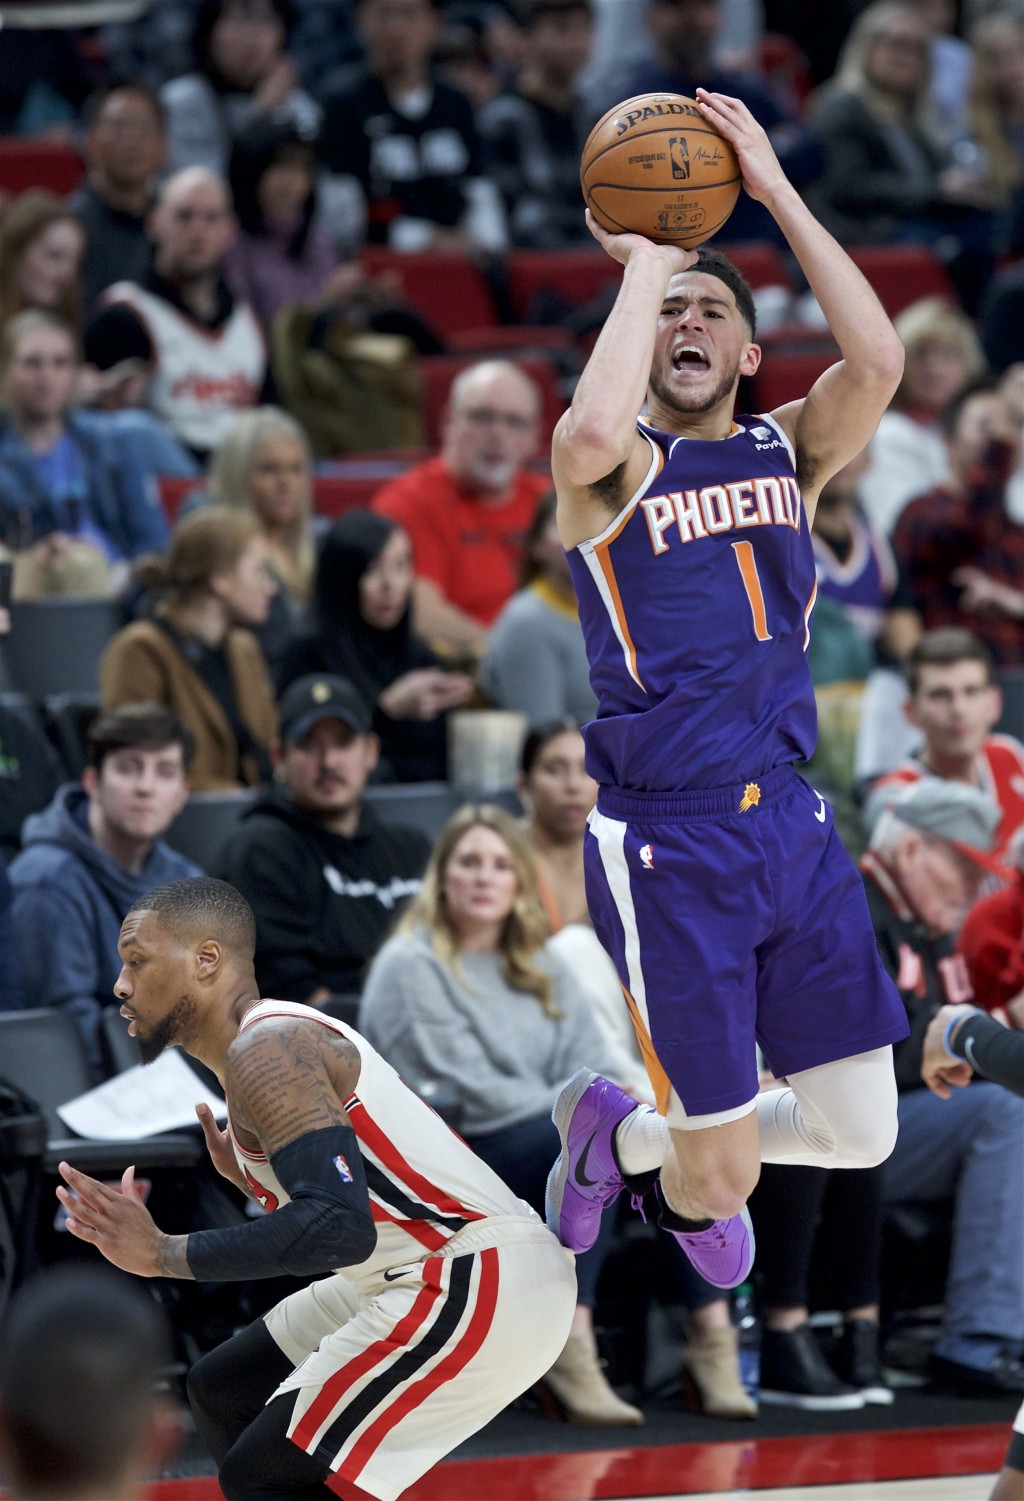 Phoenix Suns guard Devin Booker, right, shoots over Portland Trail Blazers guard Damian Lillard during the second half of an NBA basketball game in Po...